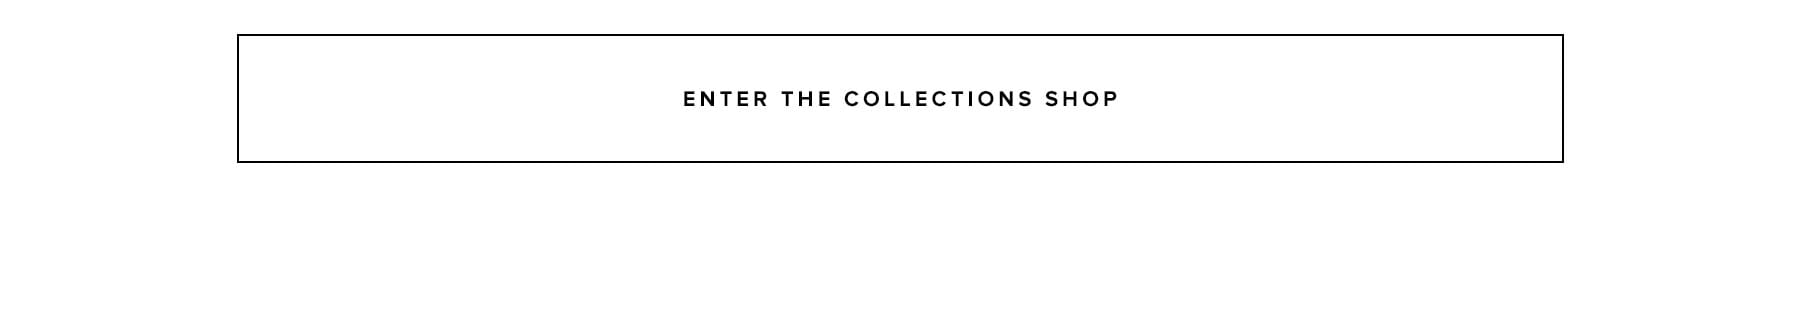 Enter The Collections Shop